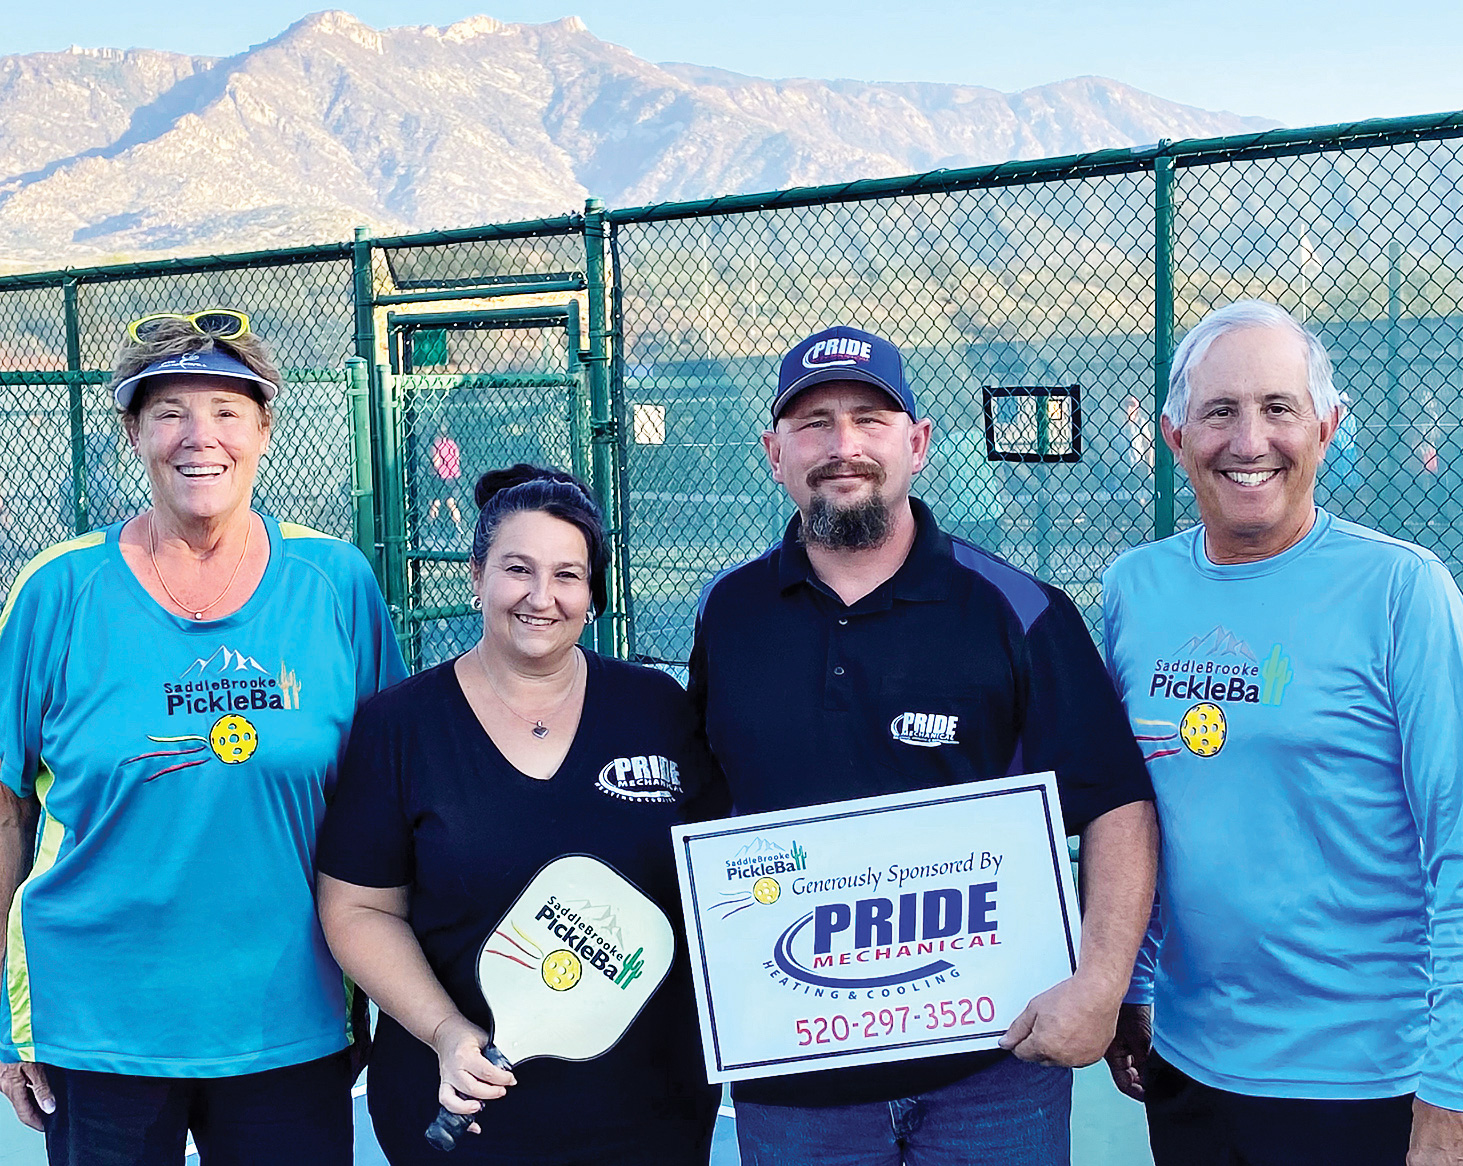 SPA Fundraising Co-chair, Shawne Cryderman; Pride Mechanical Owners, Christina and Allen Craighill; and SPA President, Peter Giljohann